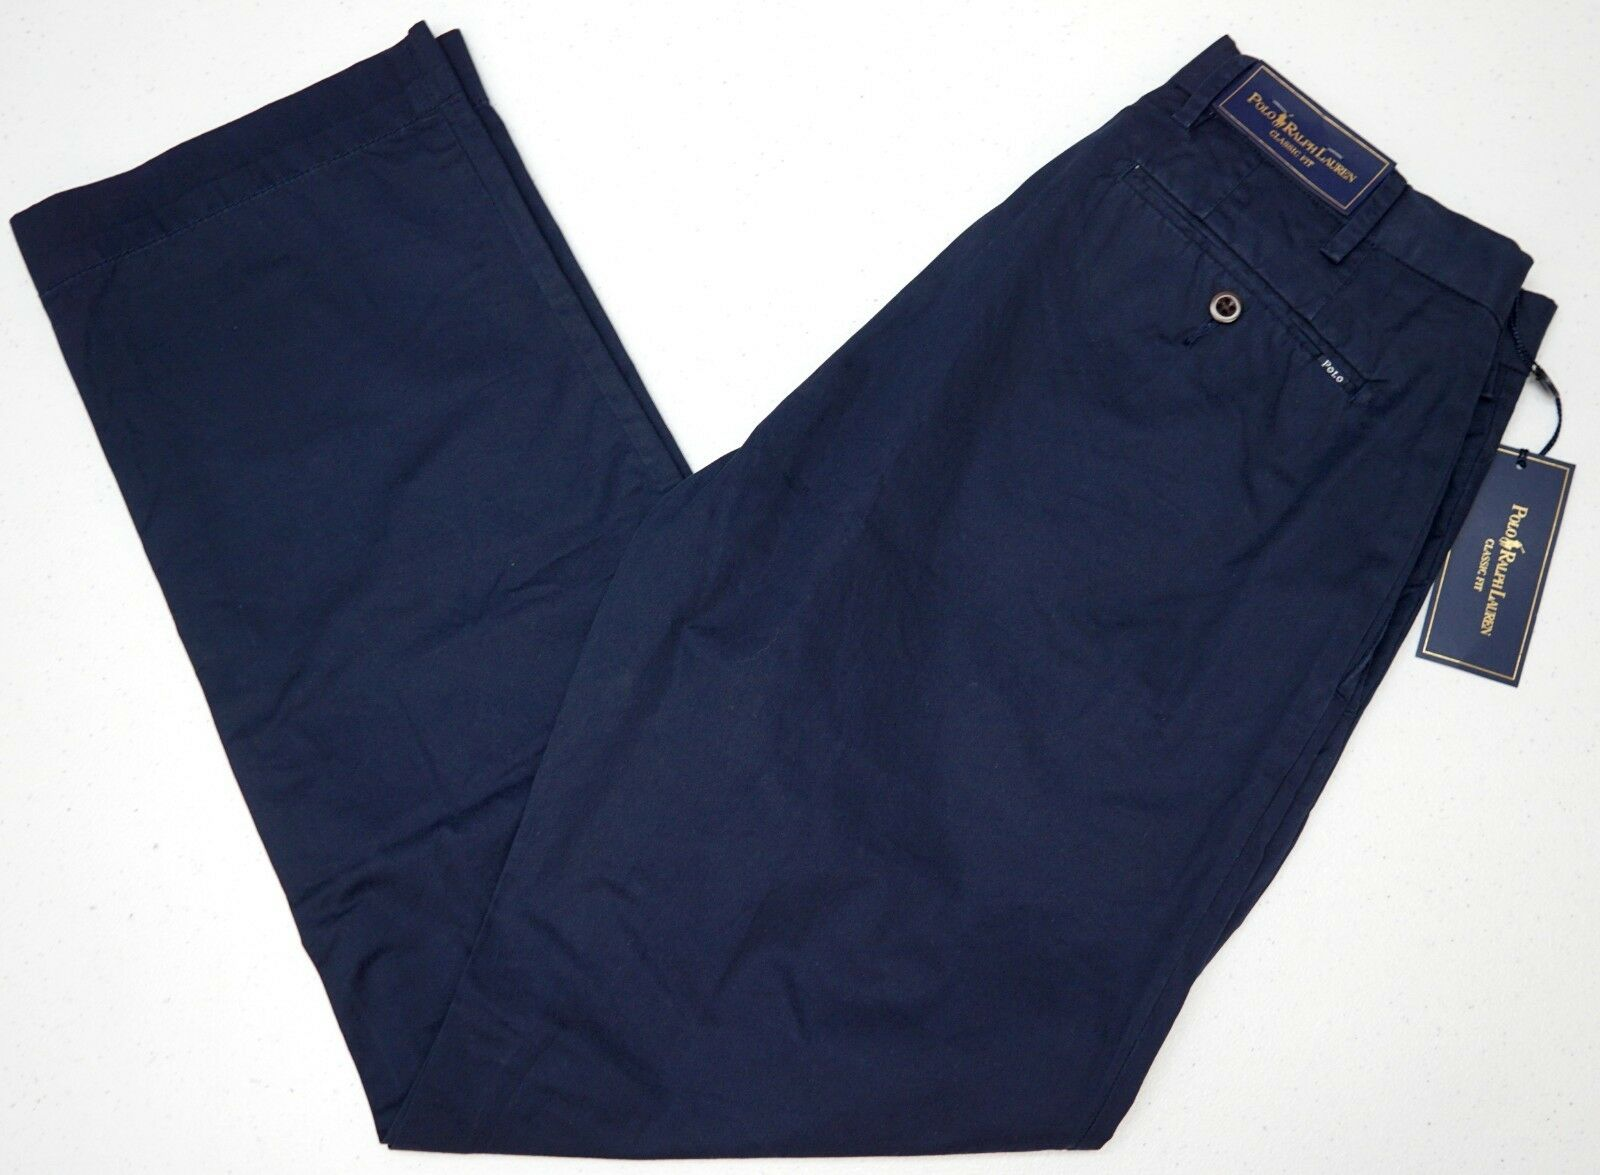 NWT  Polo Ralph Lauren Classic Fit Flat Front Pants Mens 34 Navy bluee Pima